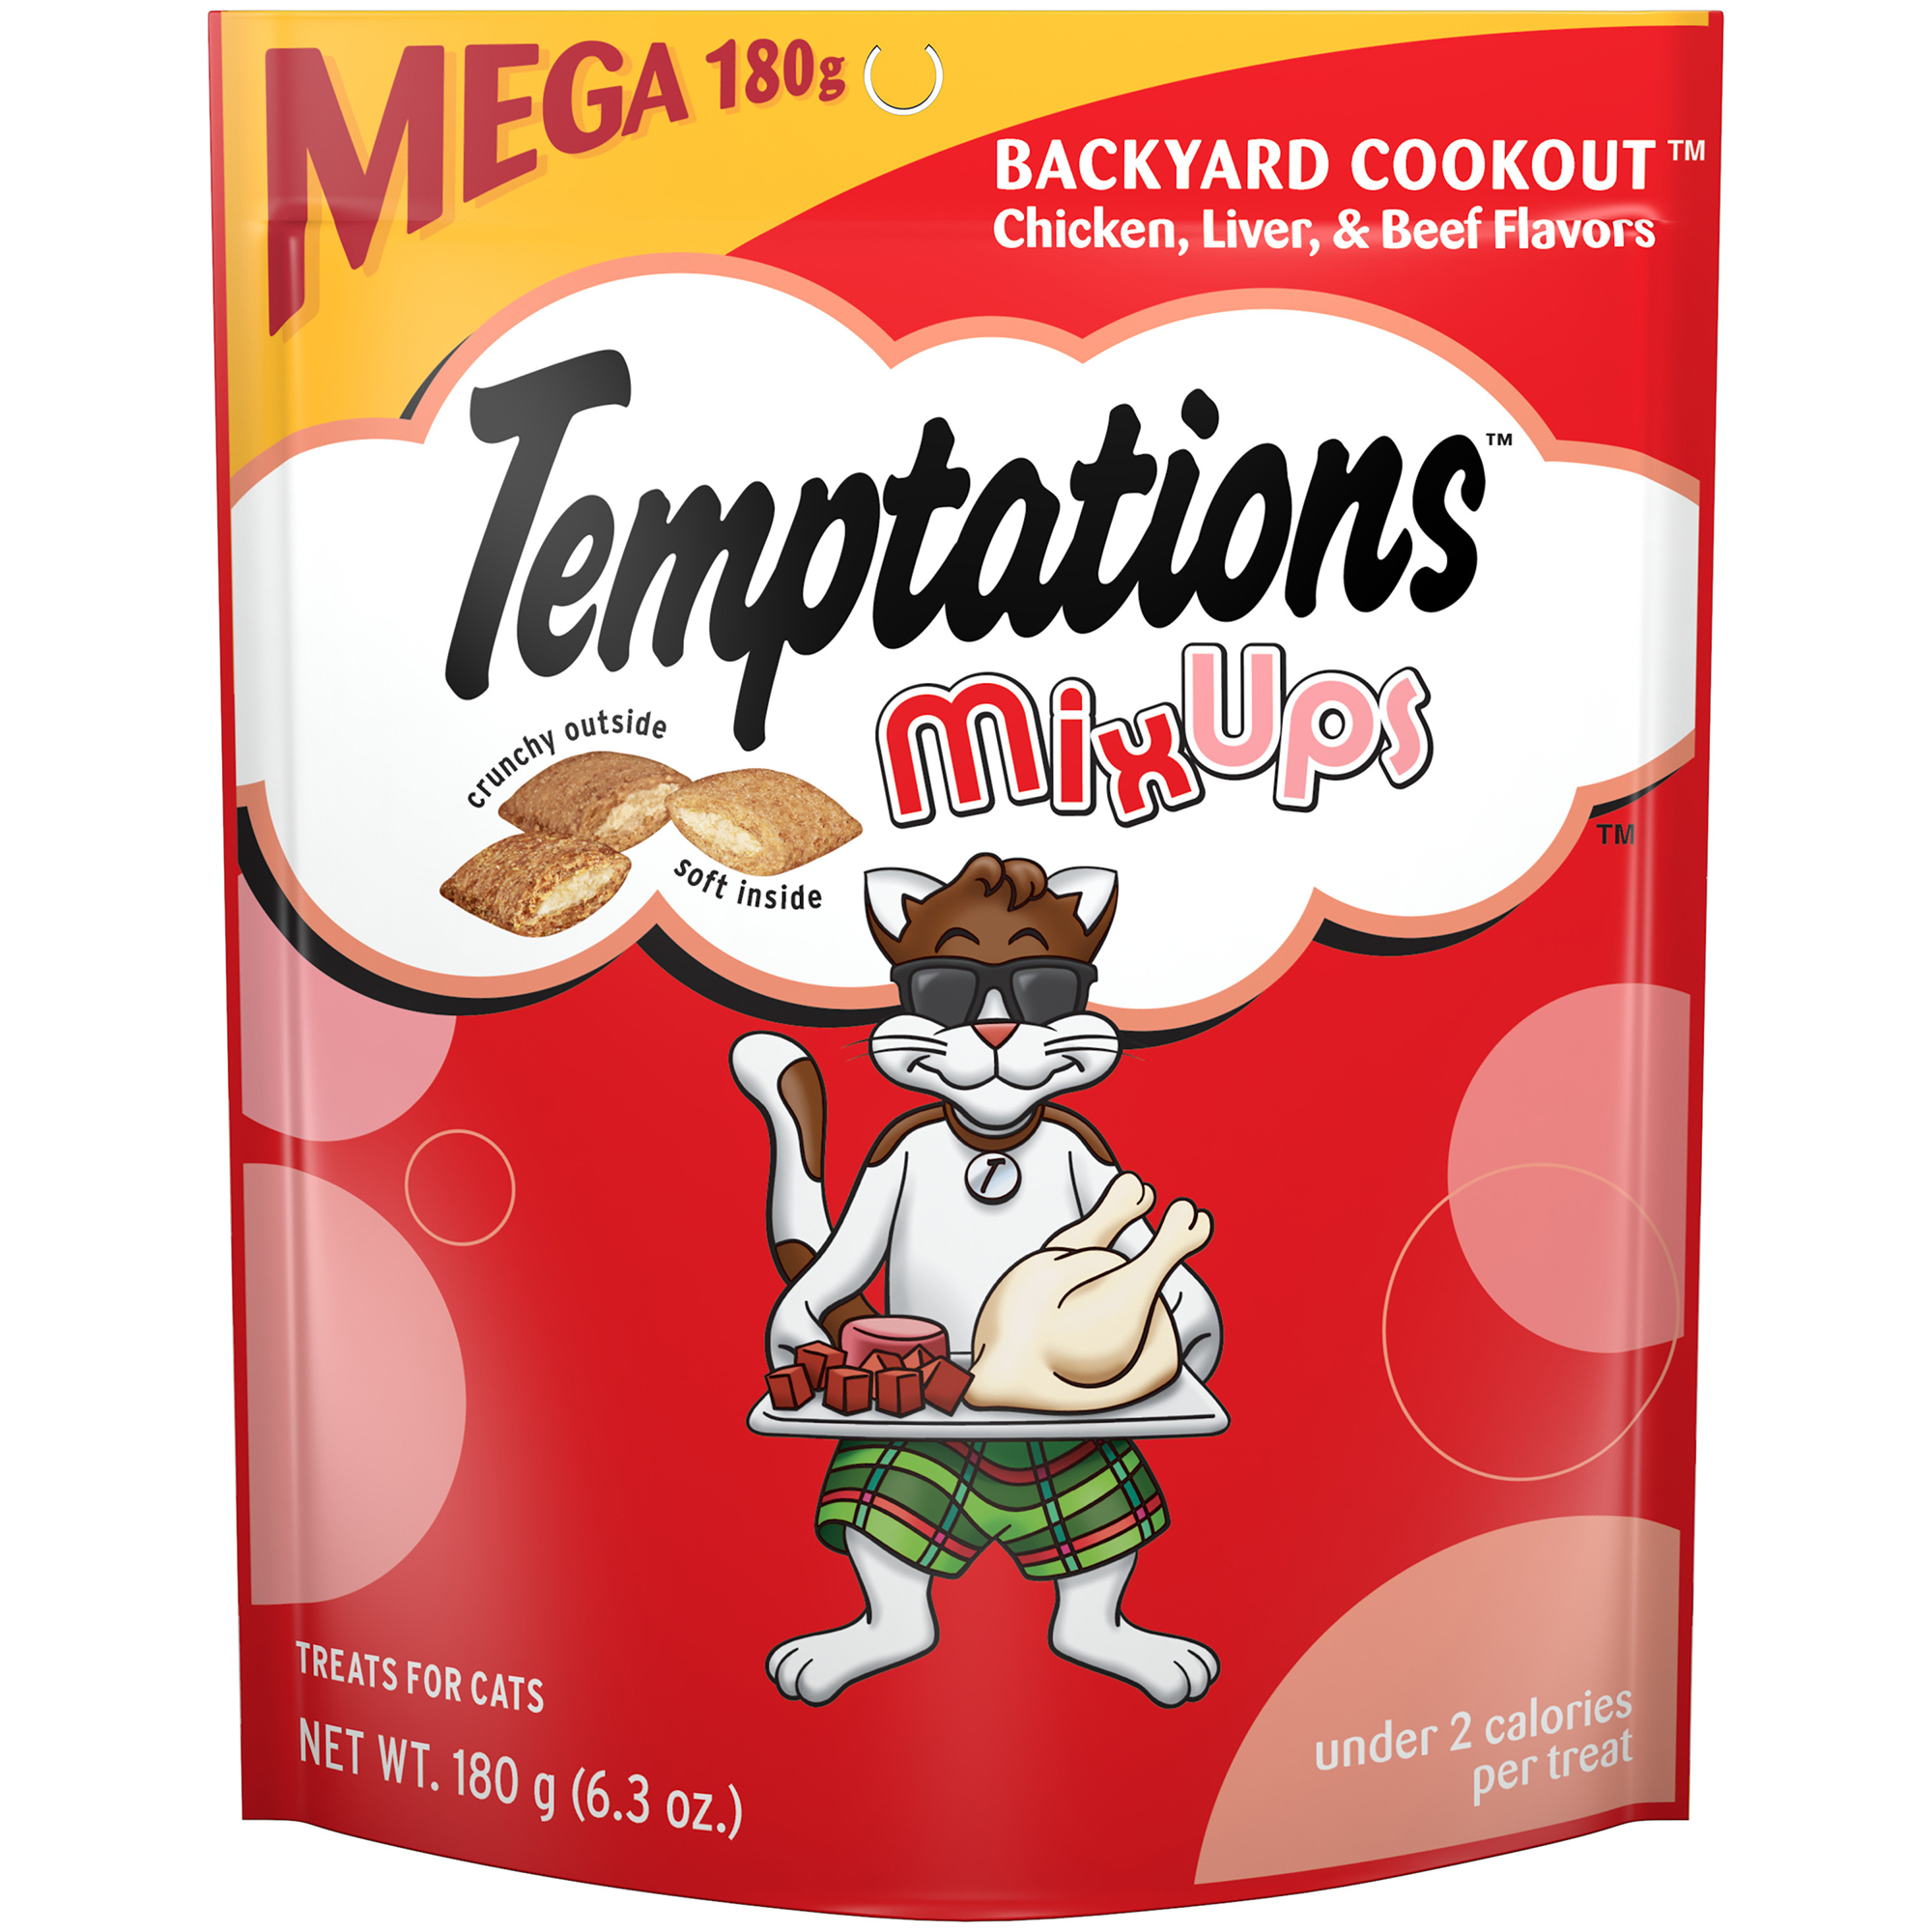 TEMPTATIONS MixUps Cat Treats BACKYARD COOKOUT Flavor, 6.3 oz. Pouch